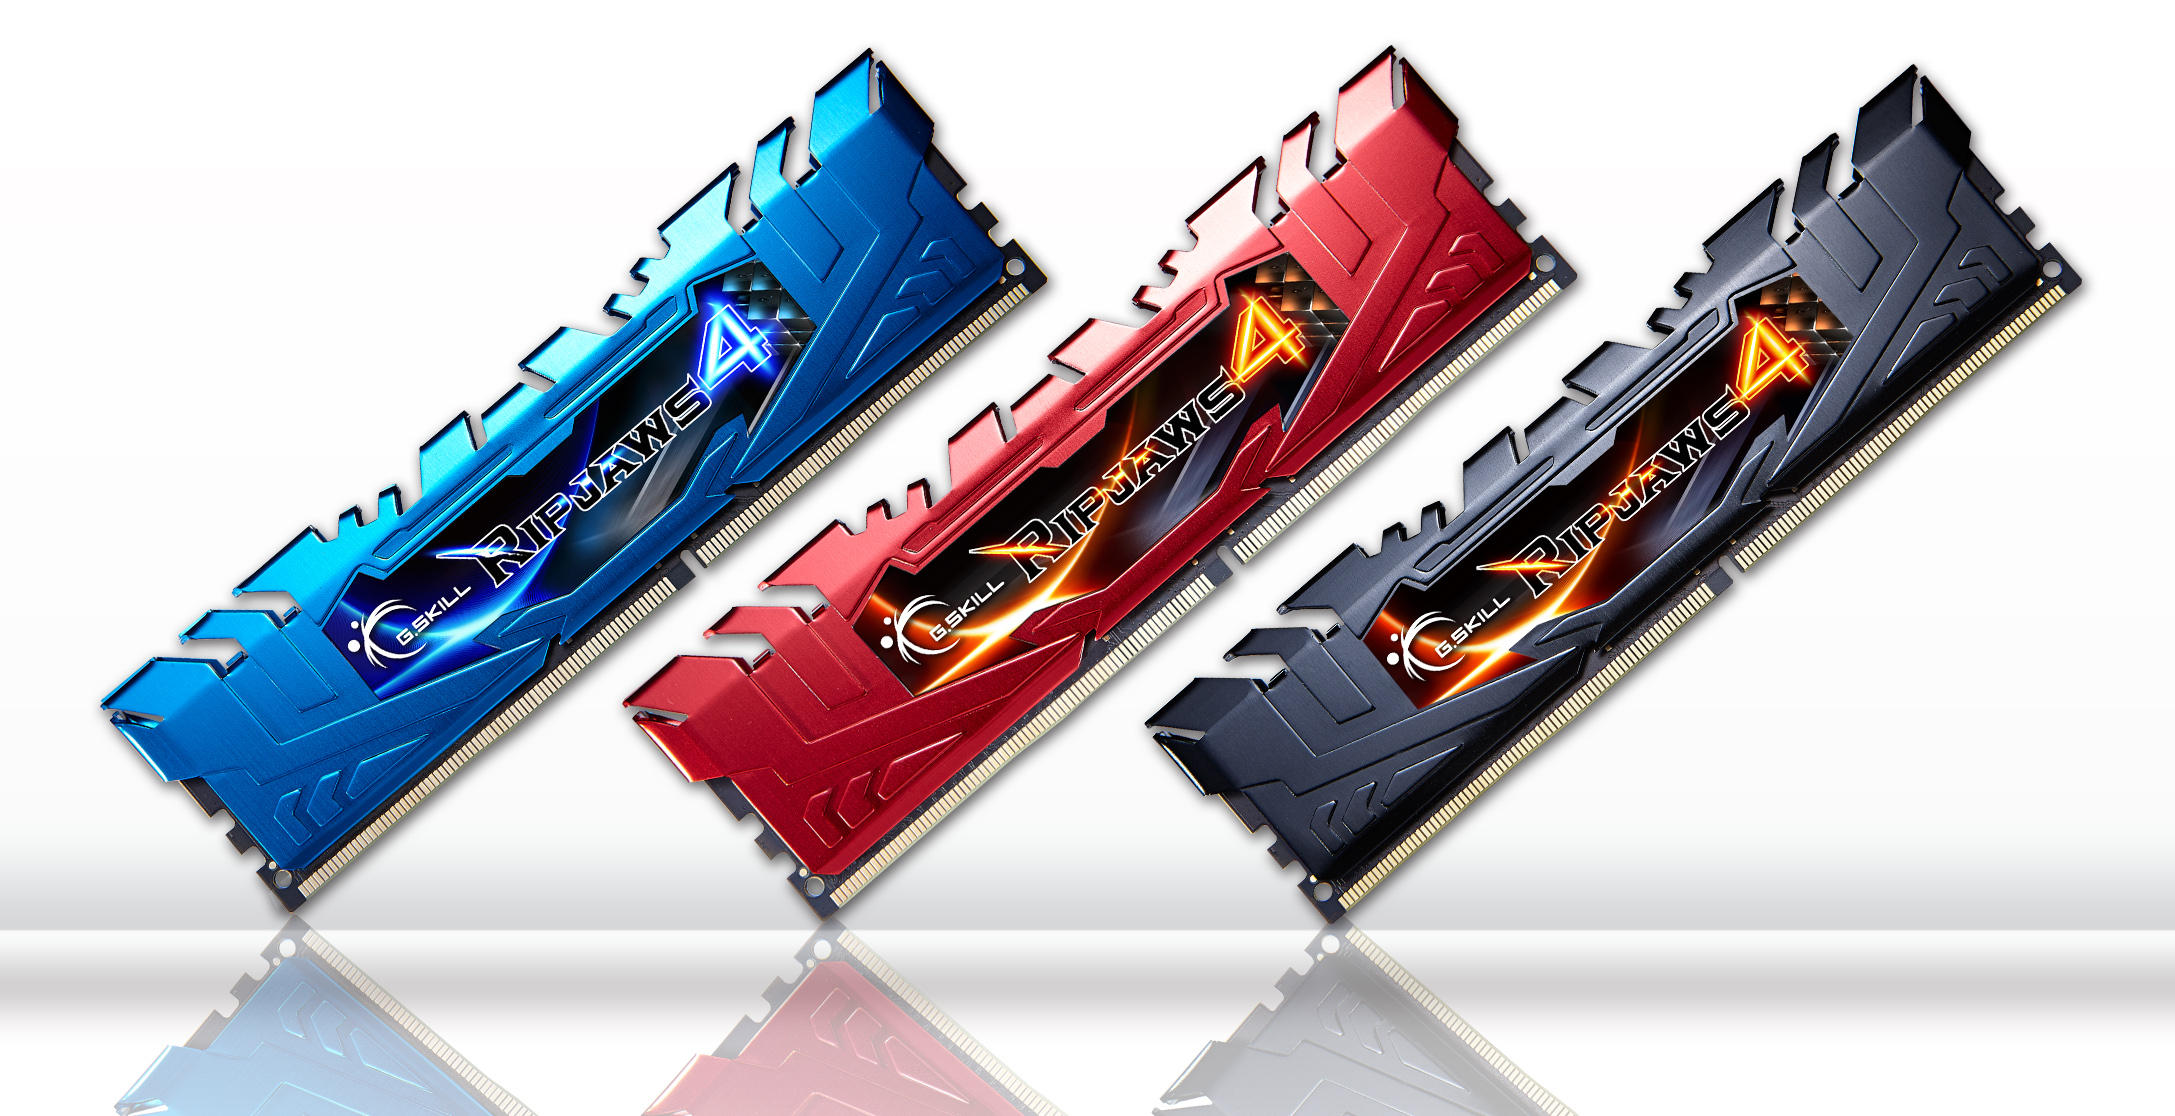 $53.09! G.SKILL Ripjaws 4 16GB (2 x 8GB) DDR4 2400 Desktop Memory